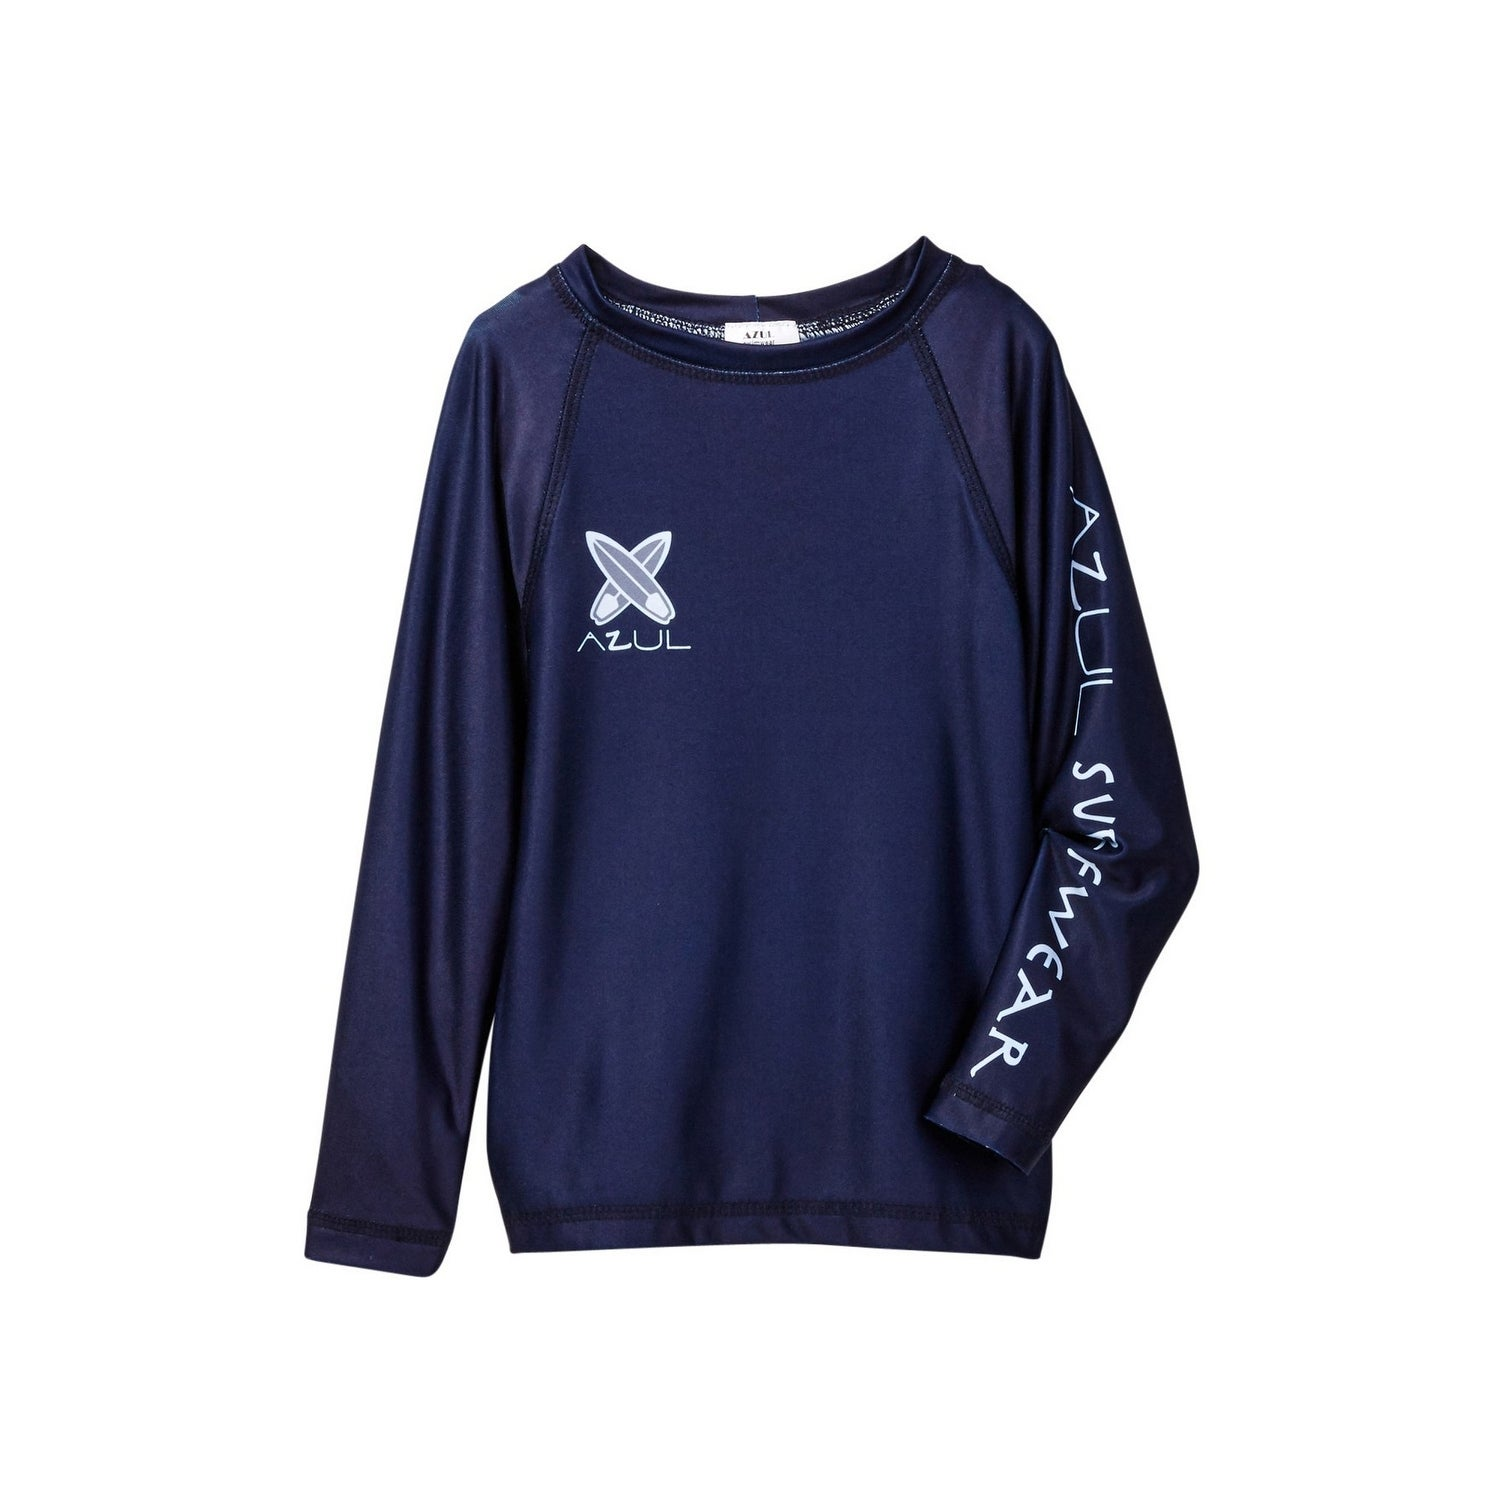 09aa27f748 Shop Azul Baby Boys Navy Solid Color Logo Detail Long Sleeve Rash Guard -  18-24 Months - Free Shipping On Orders Over $45 - Overstock - 25489812